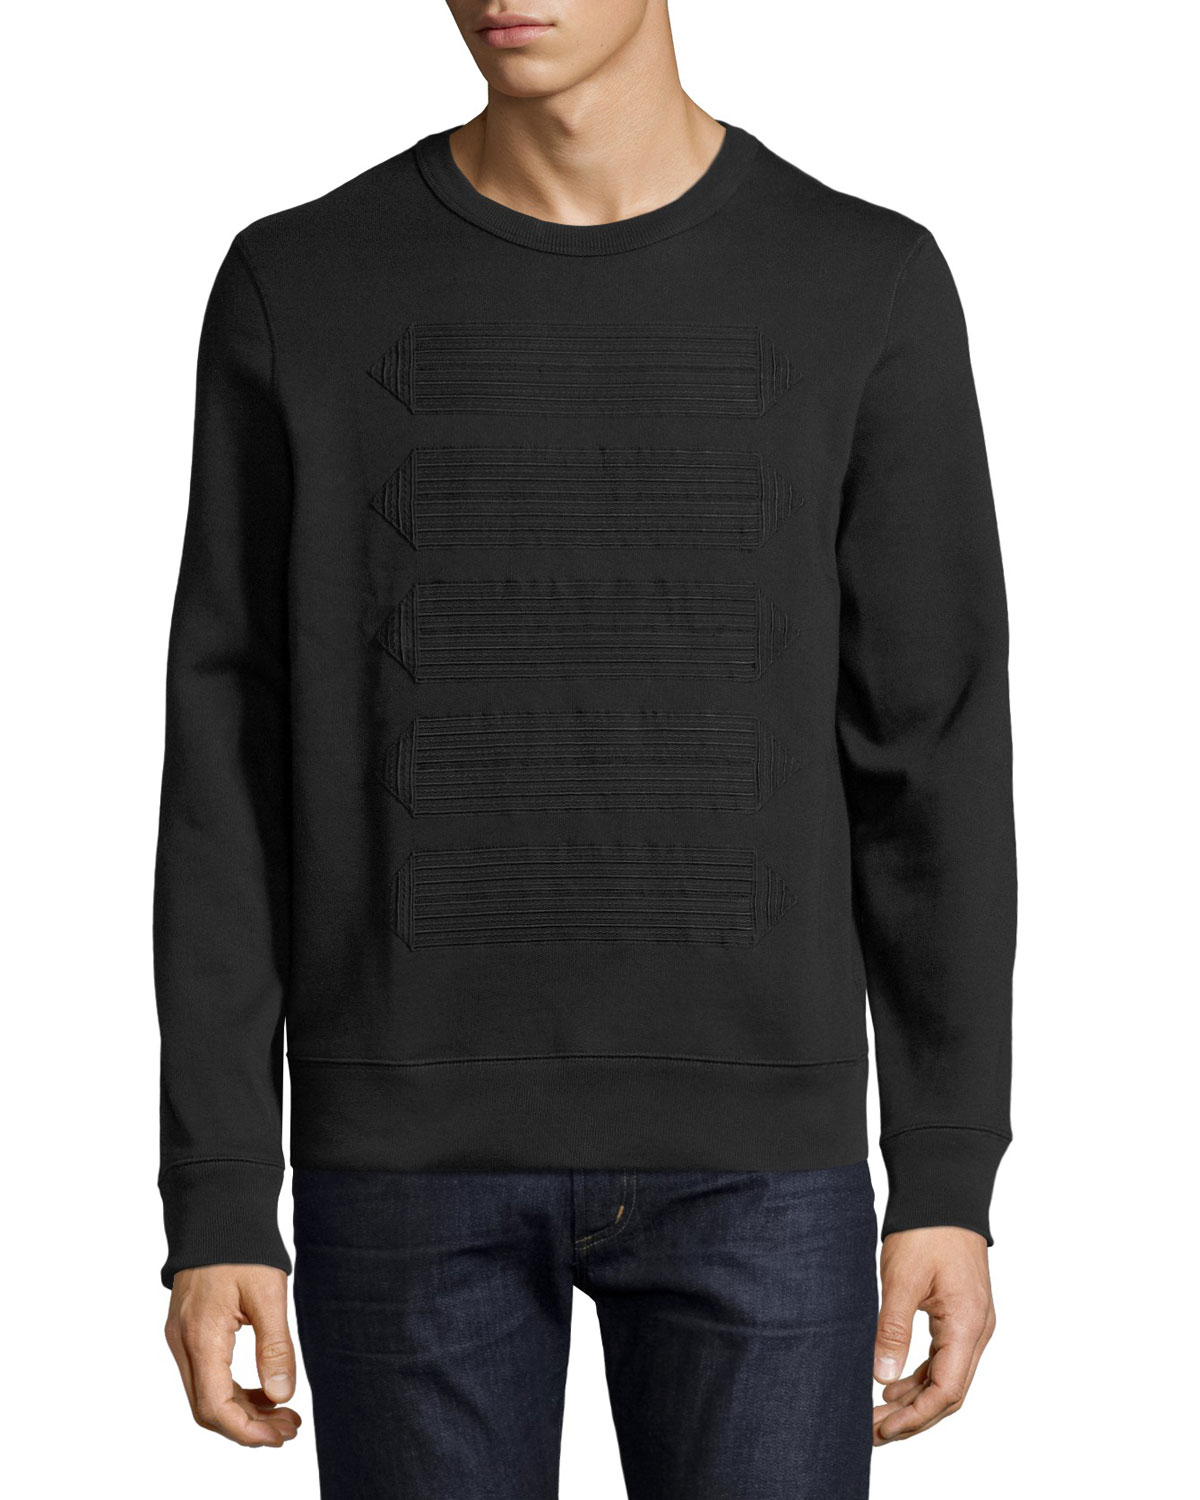 Atley Regimental-Tape Sweatshirt, Black